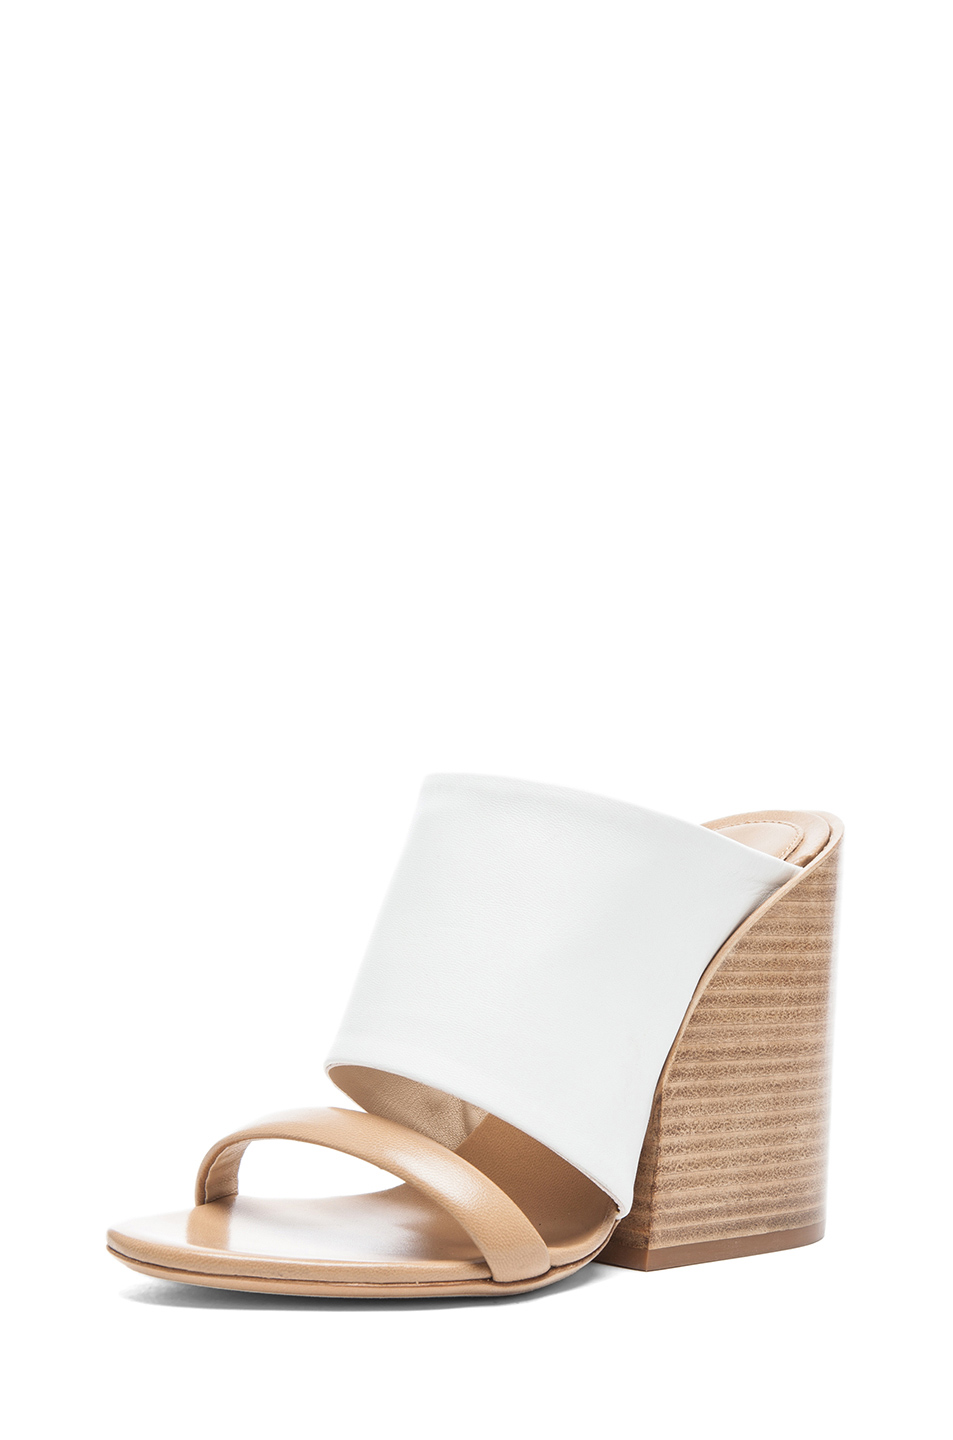 Chloe|Mule Nappa Leather Sandals in White & Tan